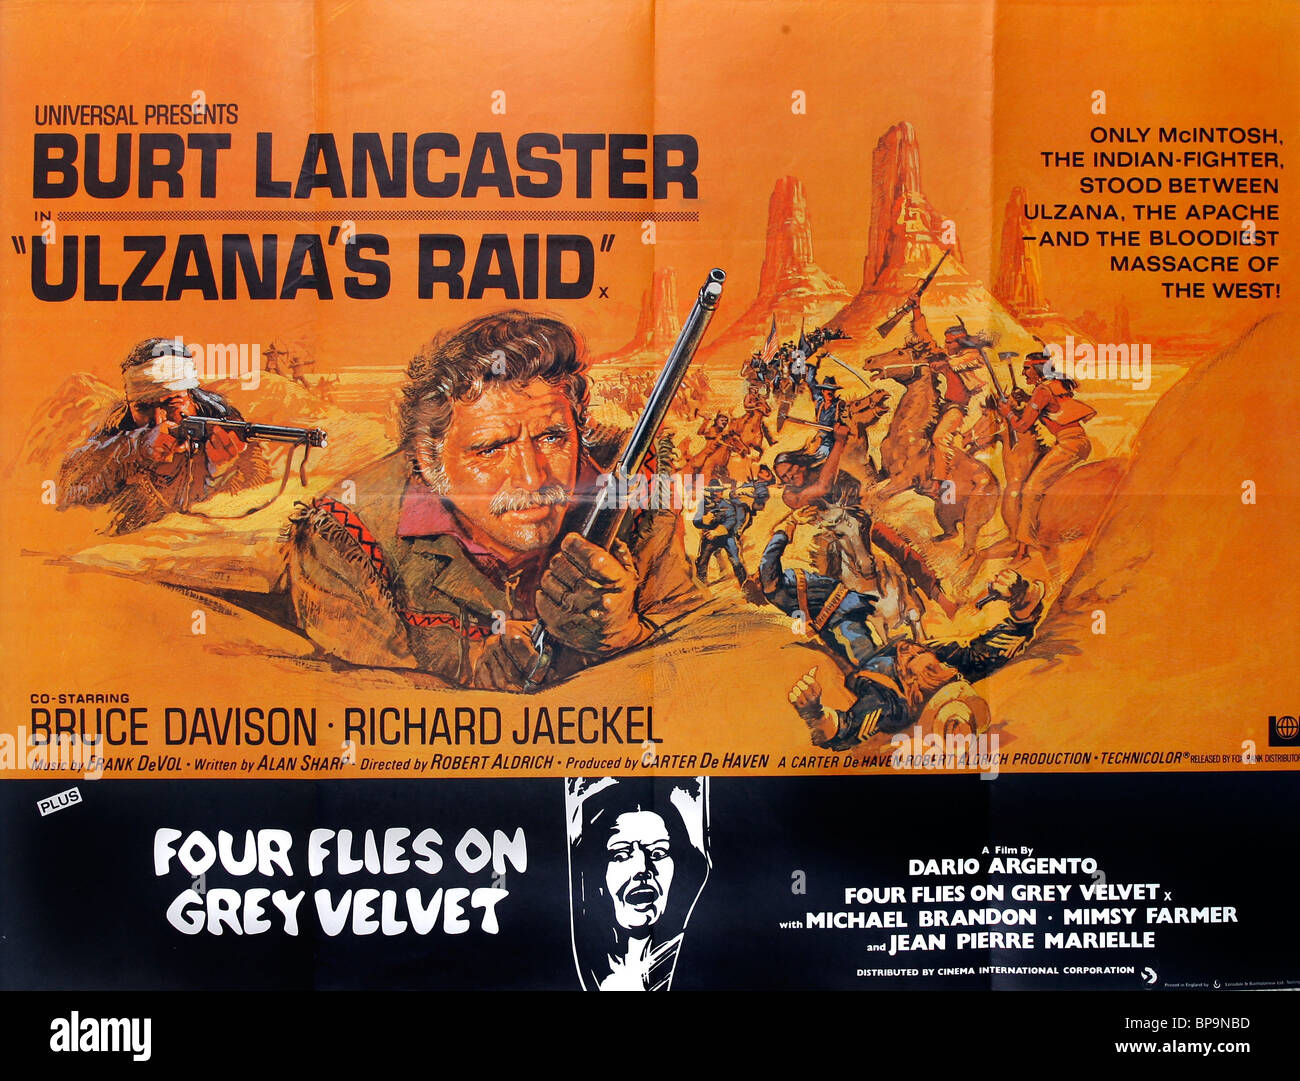 burt lancaster film poster ulzana 39 s raid 1972 stock photo 30947153 alamy. Black Bedroom Furniture Sets. Home Design Ideas